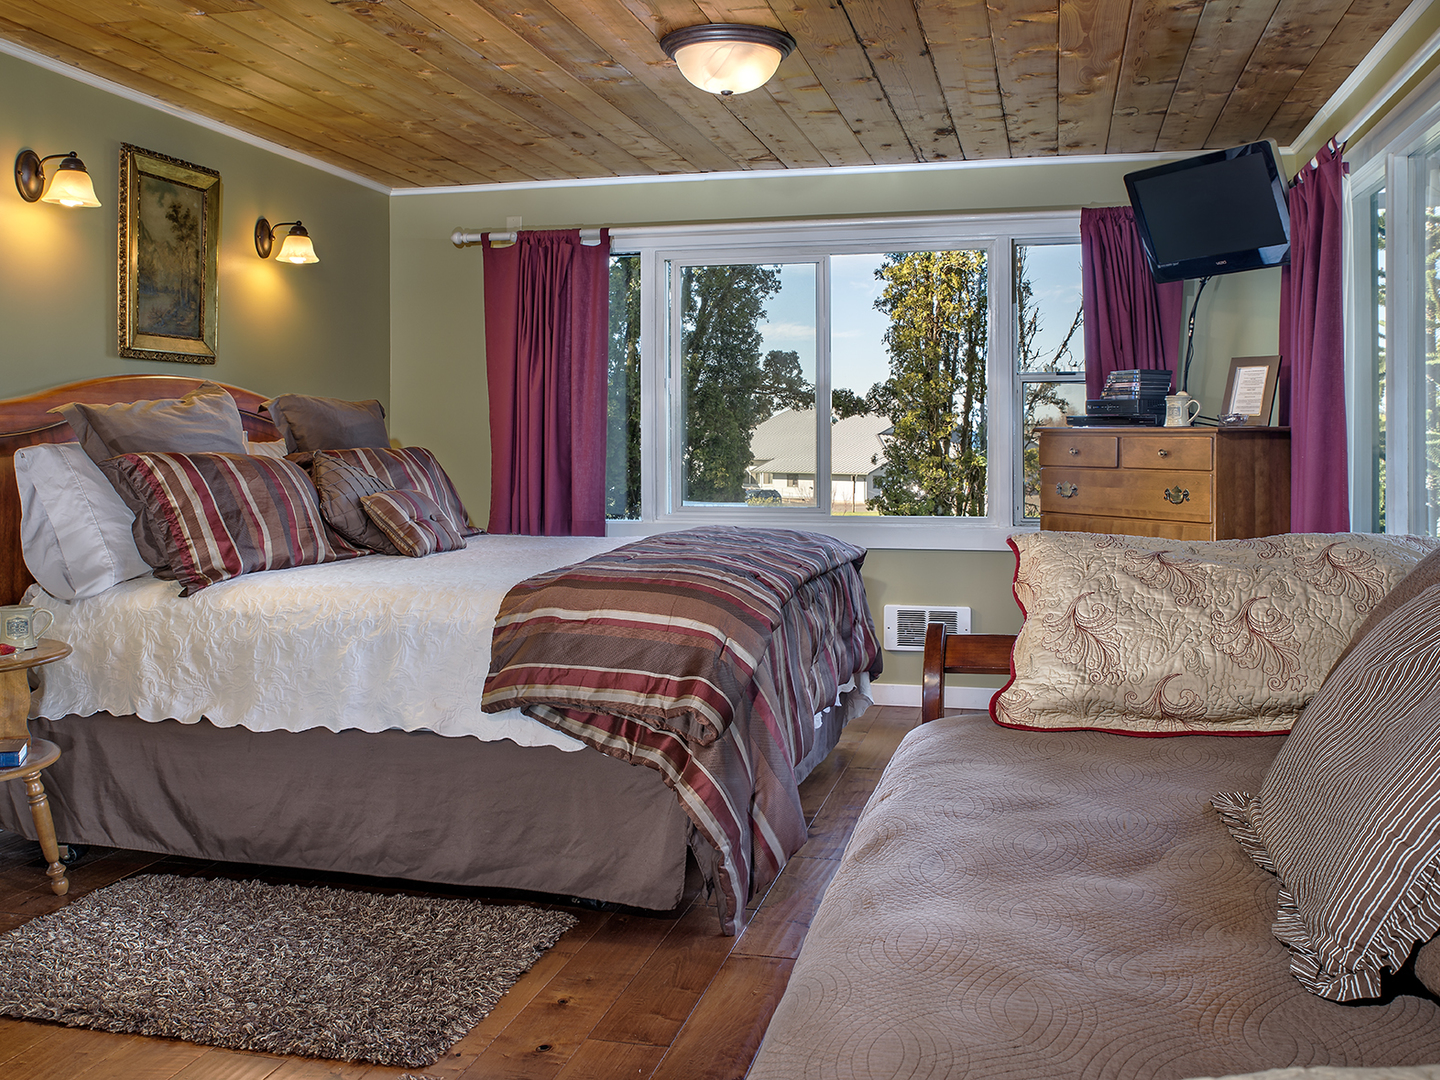 A bedroom with a large bed in a room at The Miller Tree Inn.